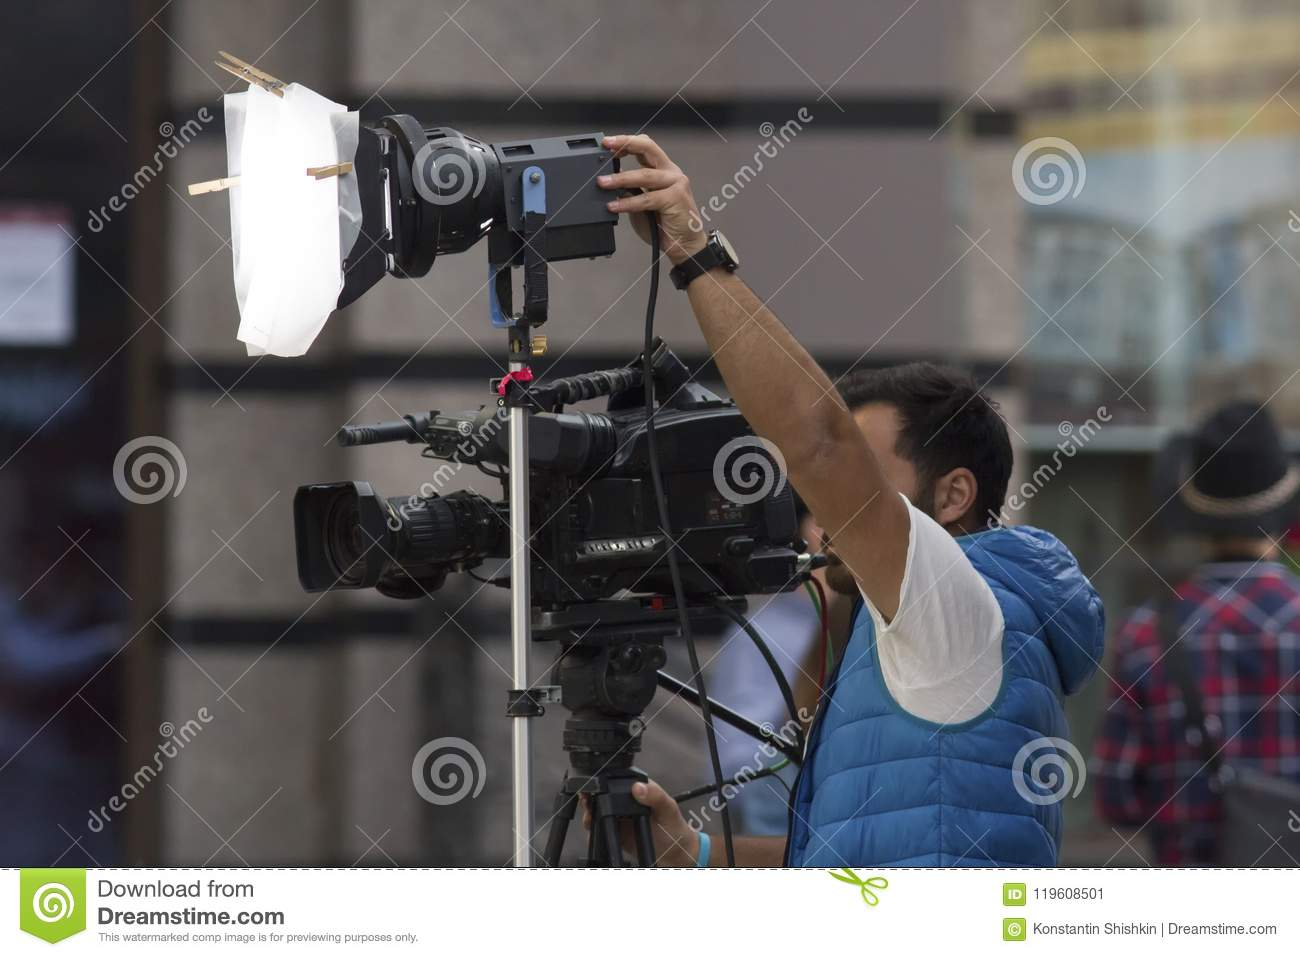 Professional cameraman shooting a video on the street